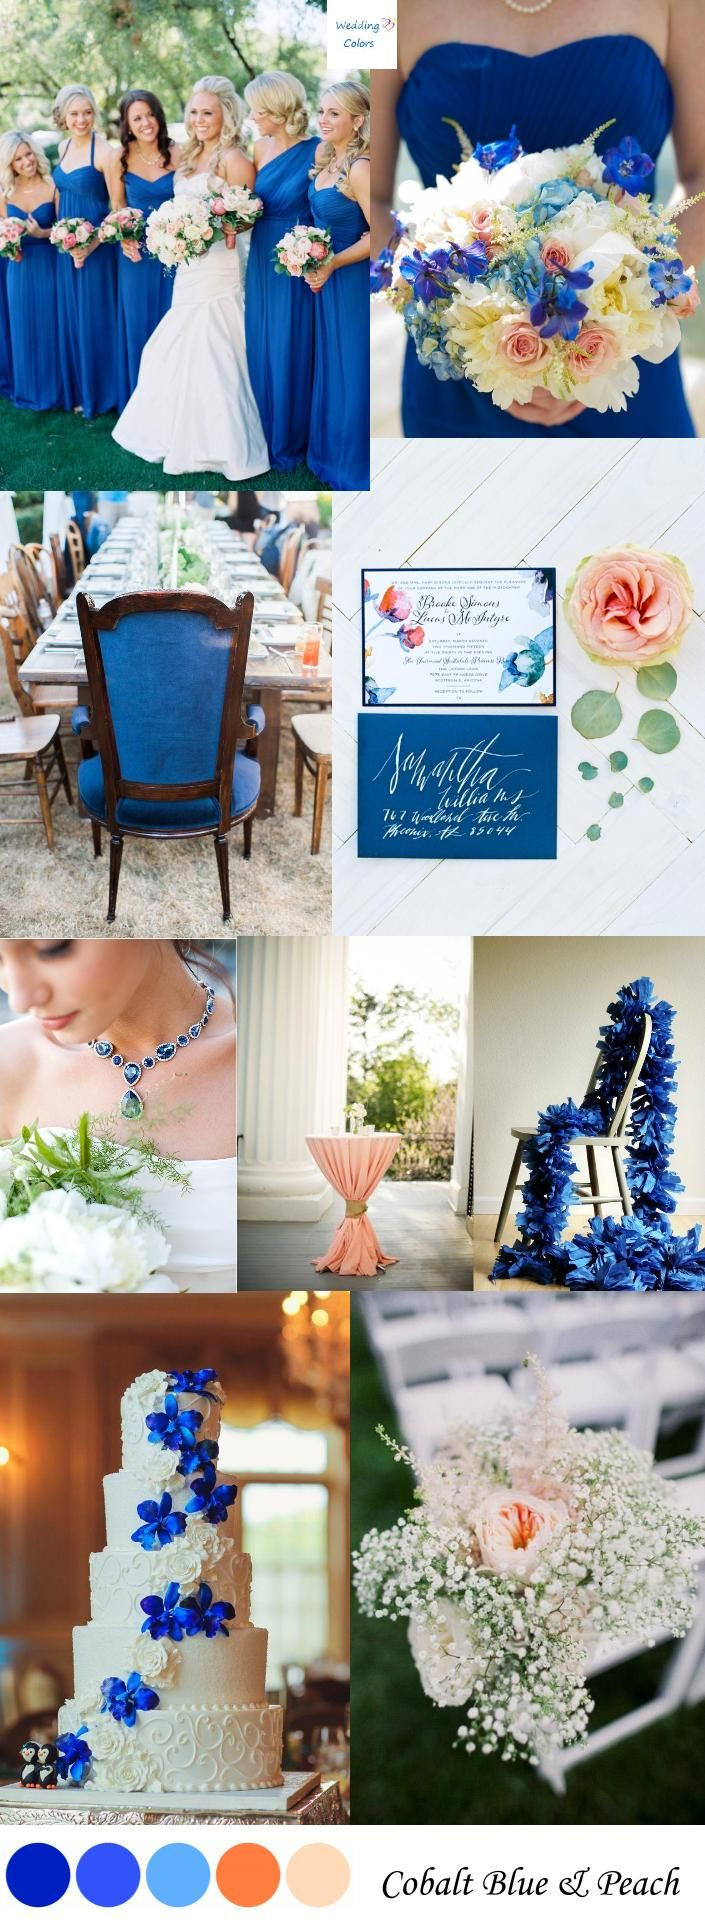 {Cobalt Blue & Peach} Wedding Color Inspiration | 부케 및 색깔